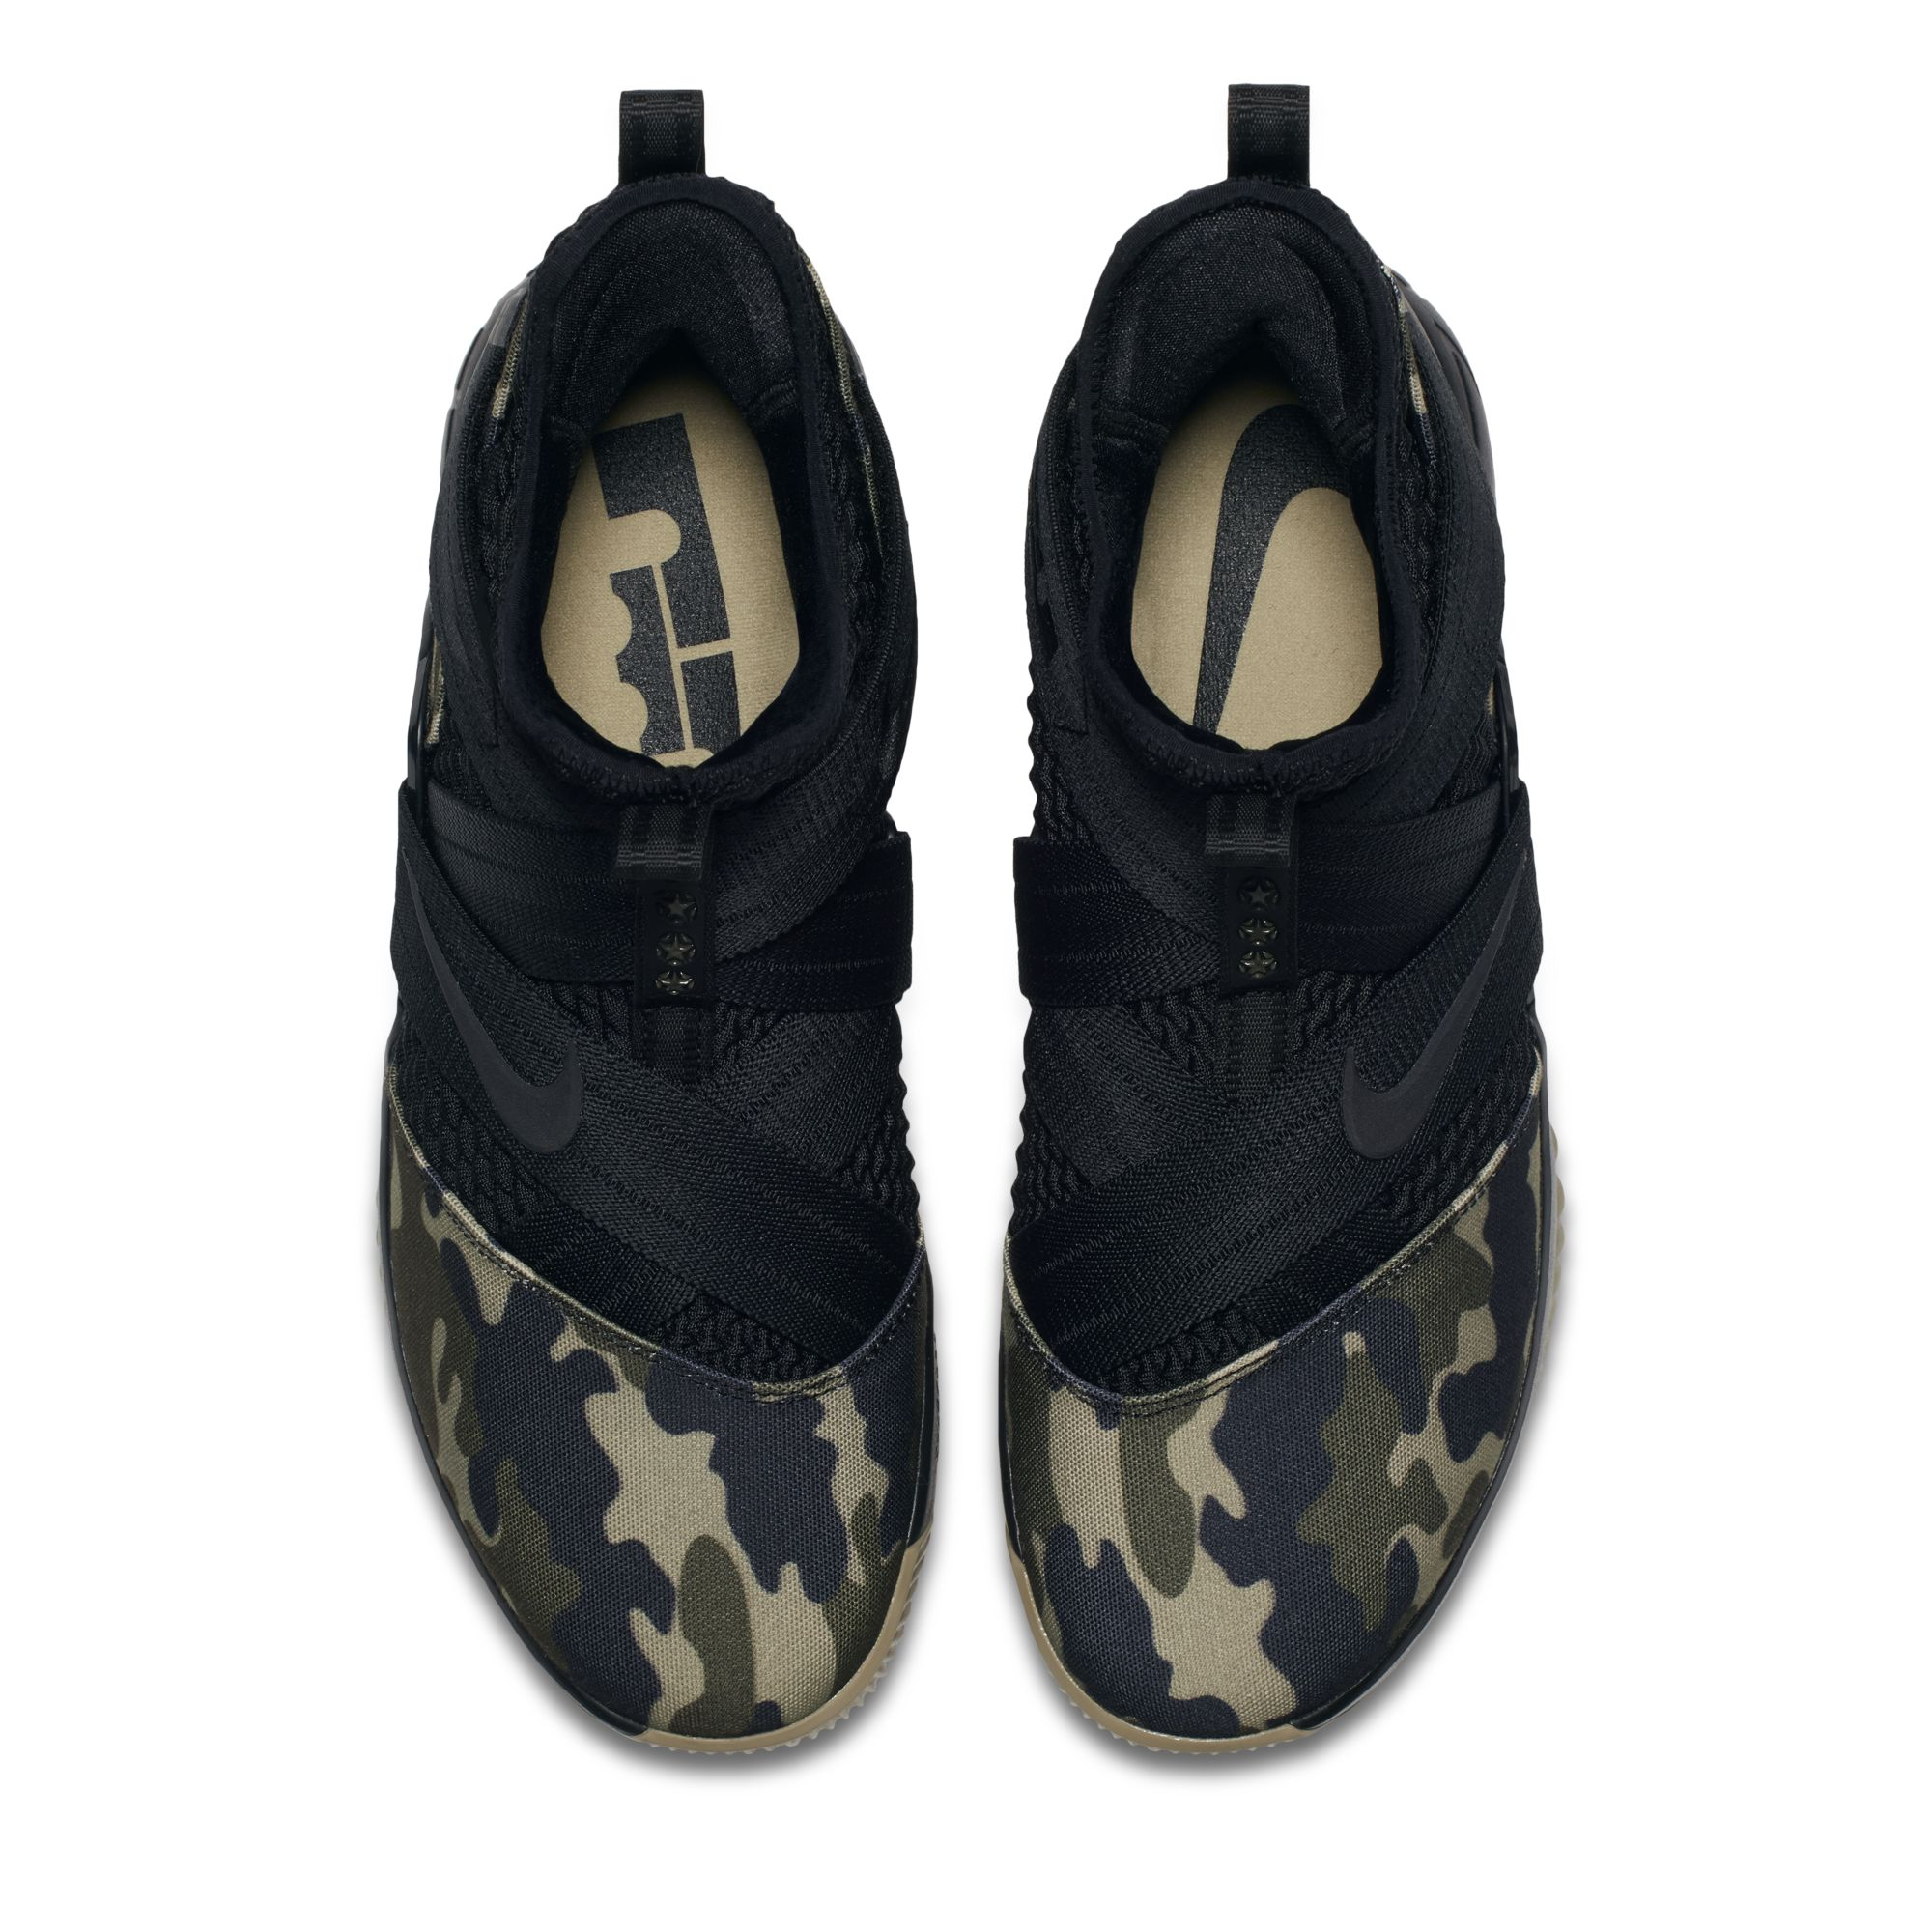 new style 13d28 89885 The Nike LeBron Soldier 12 'Camo' Is Now Available at ...